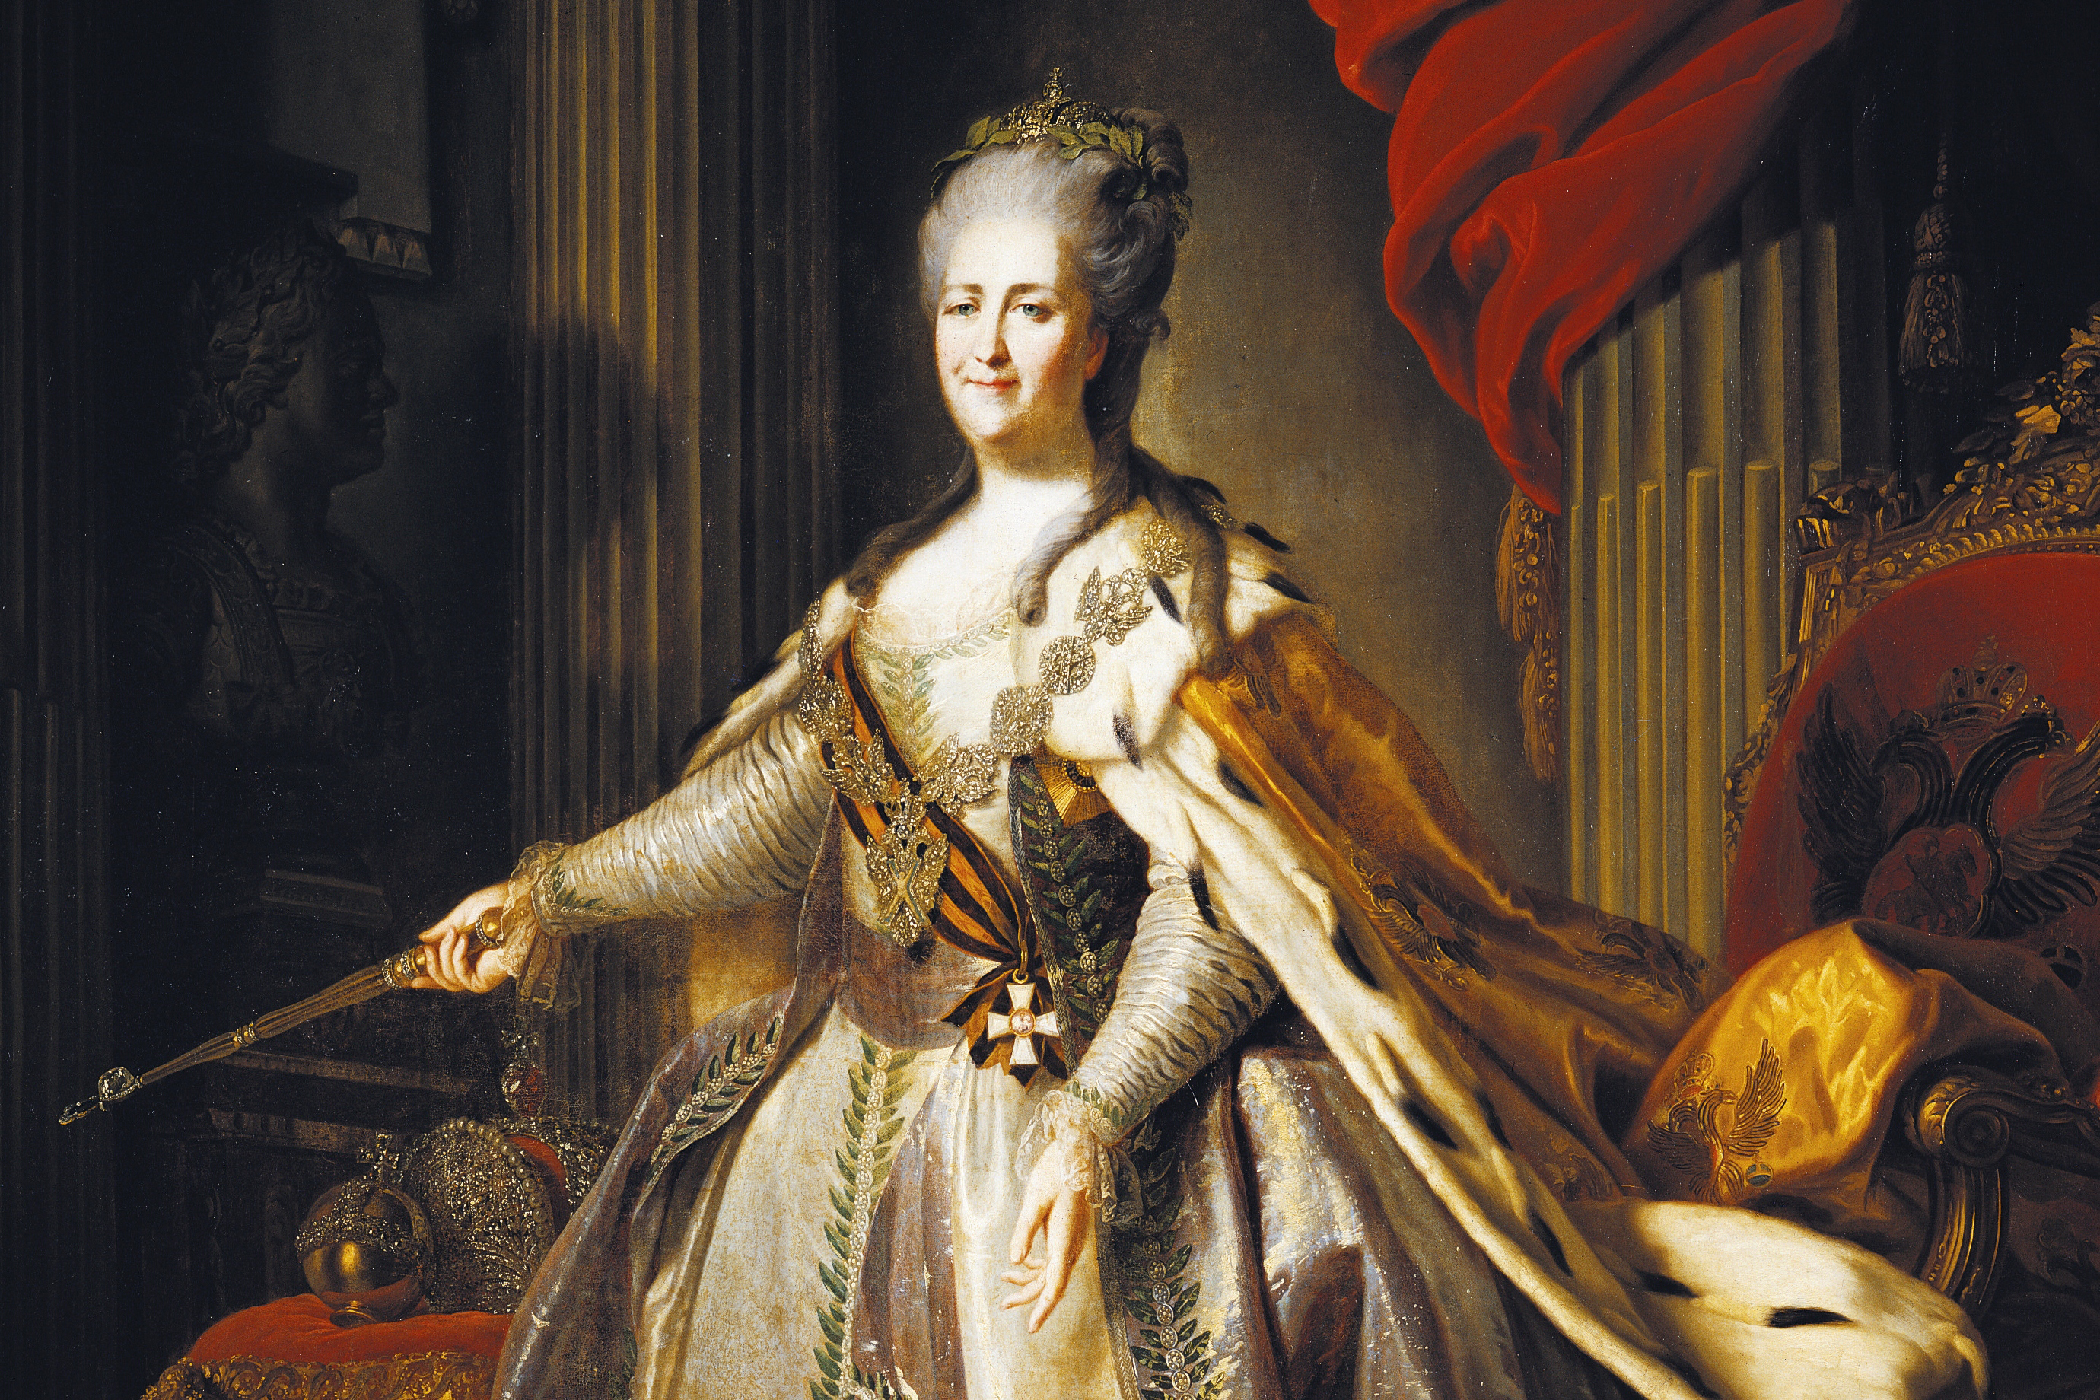 Portrait of Catherine II, also known as Catherine the Great (Stettin, 1729-Pushkin, 1796), Empress consort of Peter III of Russia (1728-1762), painting by Fyodor Rokotov (1735 or 1736-1808), ca 1770